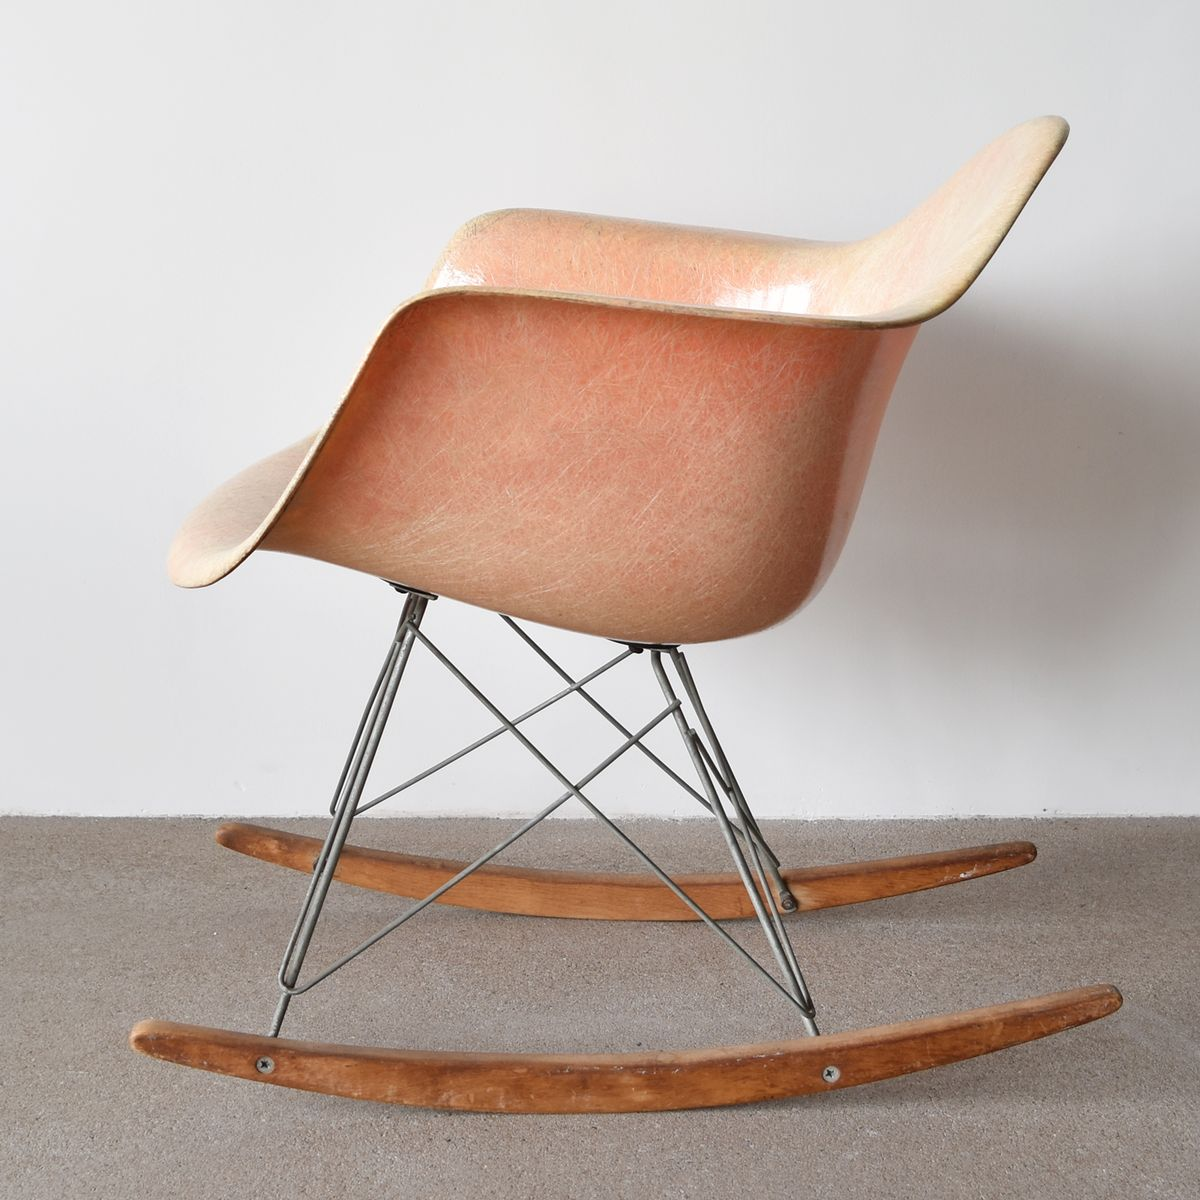 salmon rar chair by charles and ray eames 1952 for sale at pamono. Black Bedroom Furniture Sets. Home Design Ideas